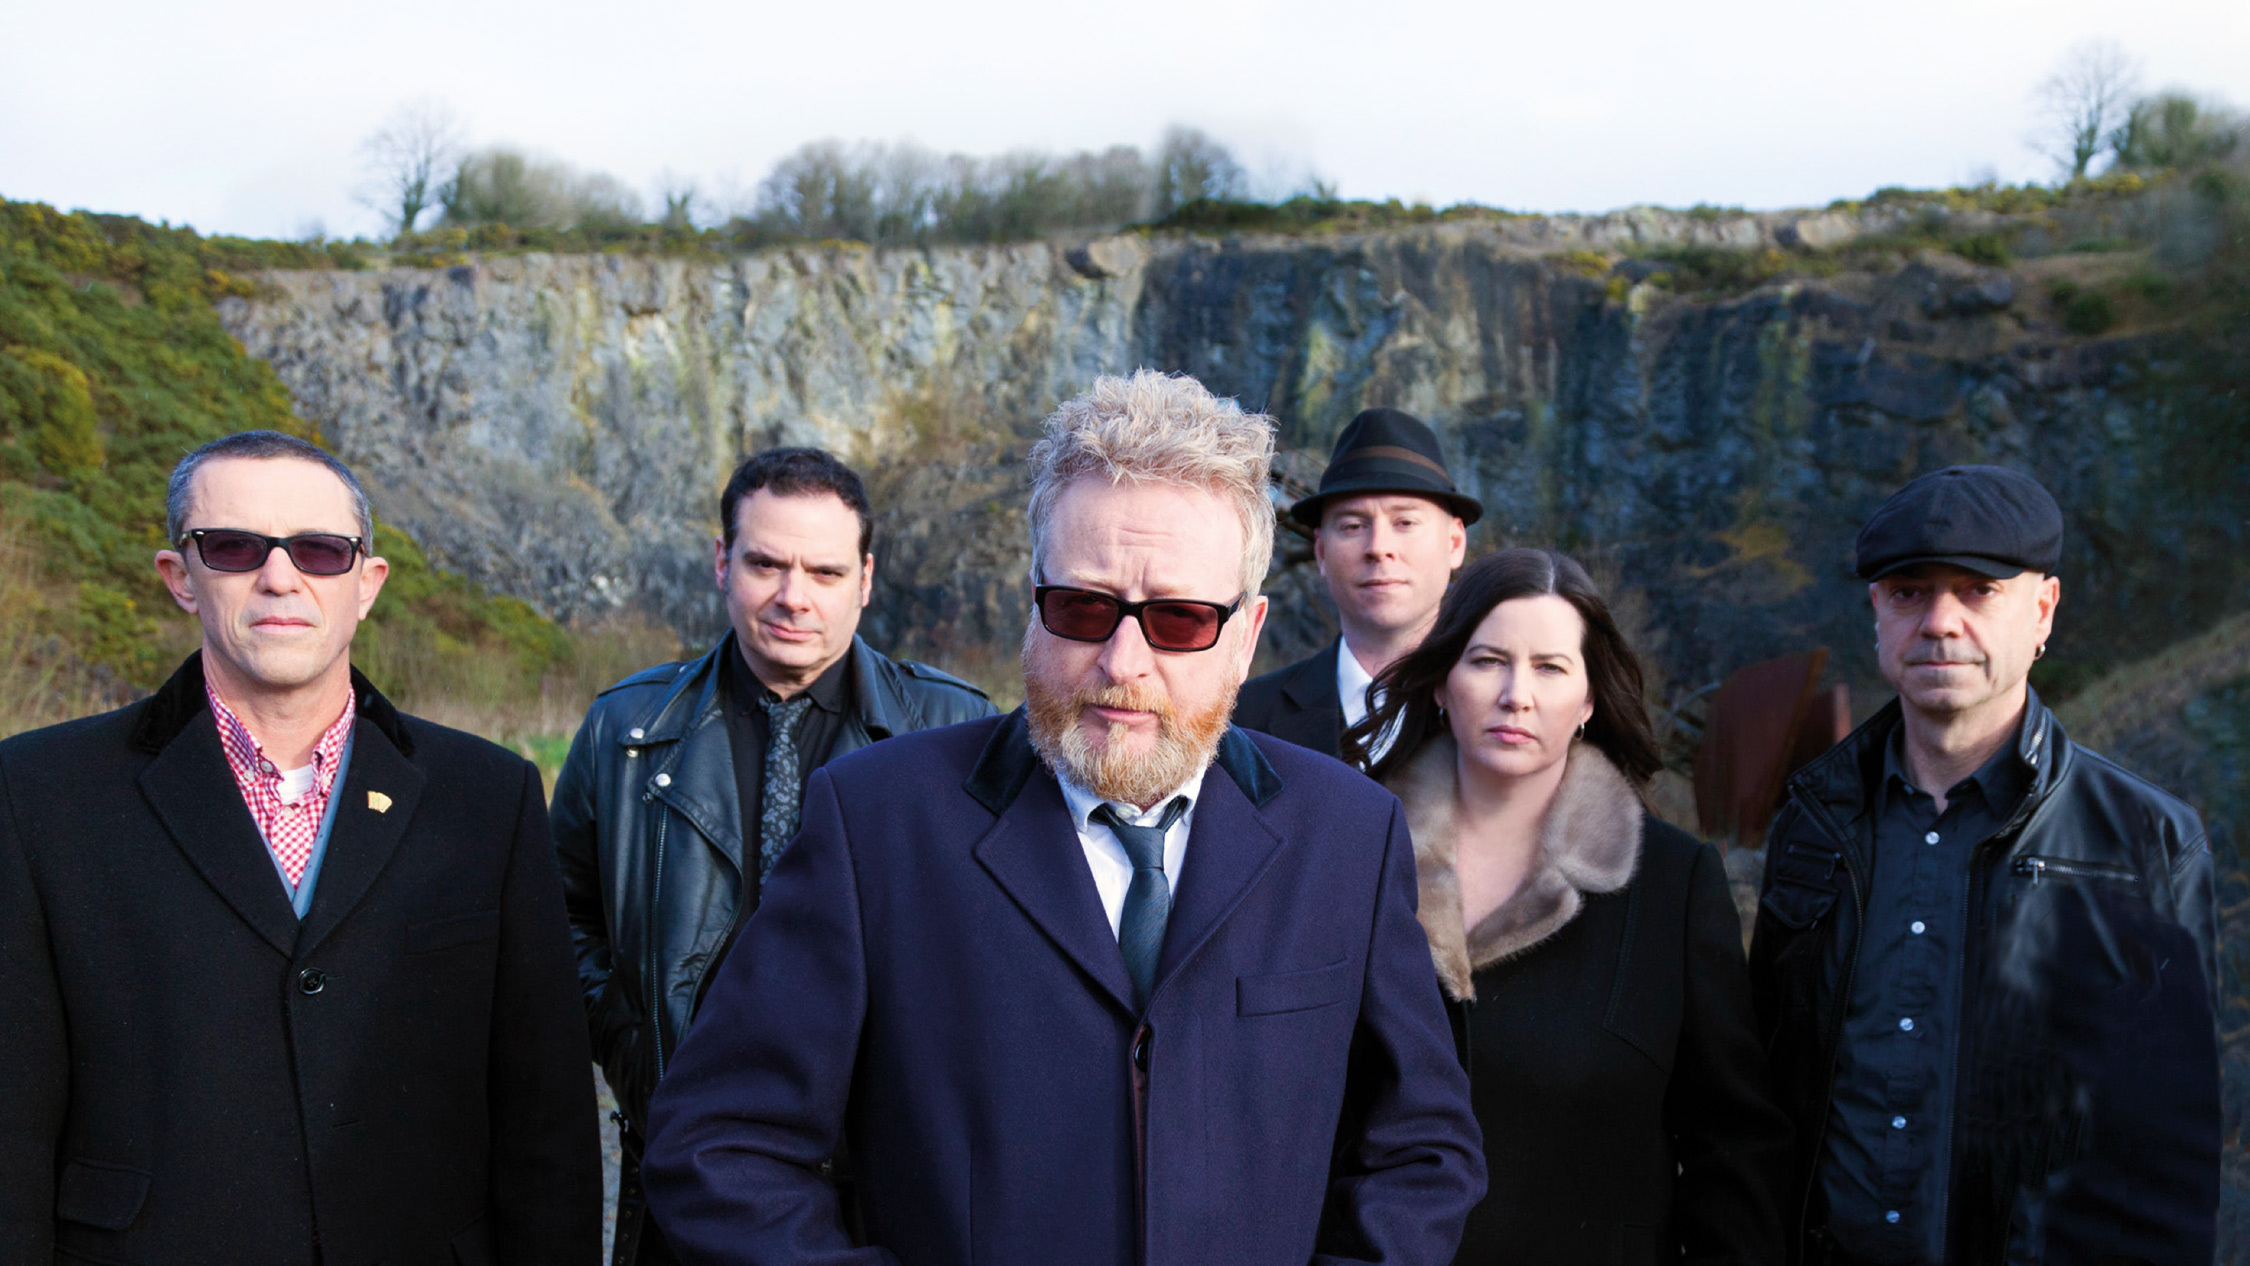 Press shot of band Flogging Molly